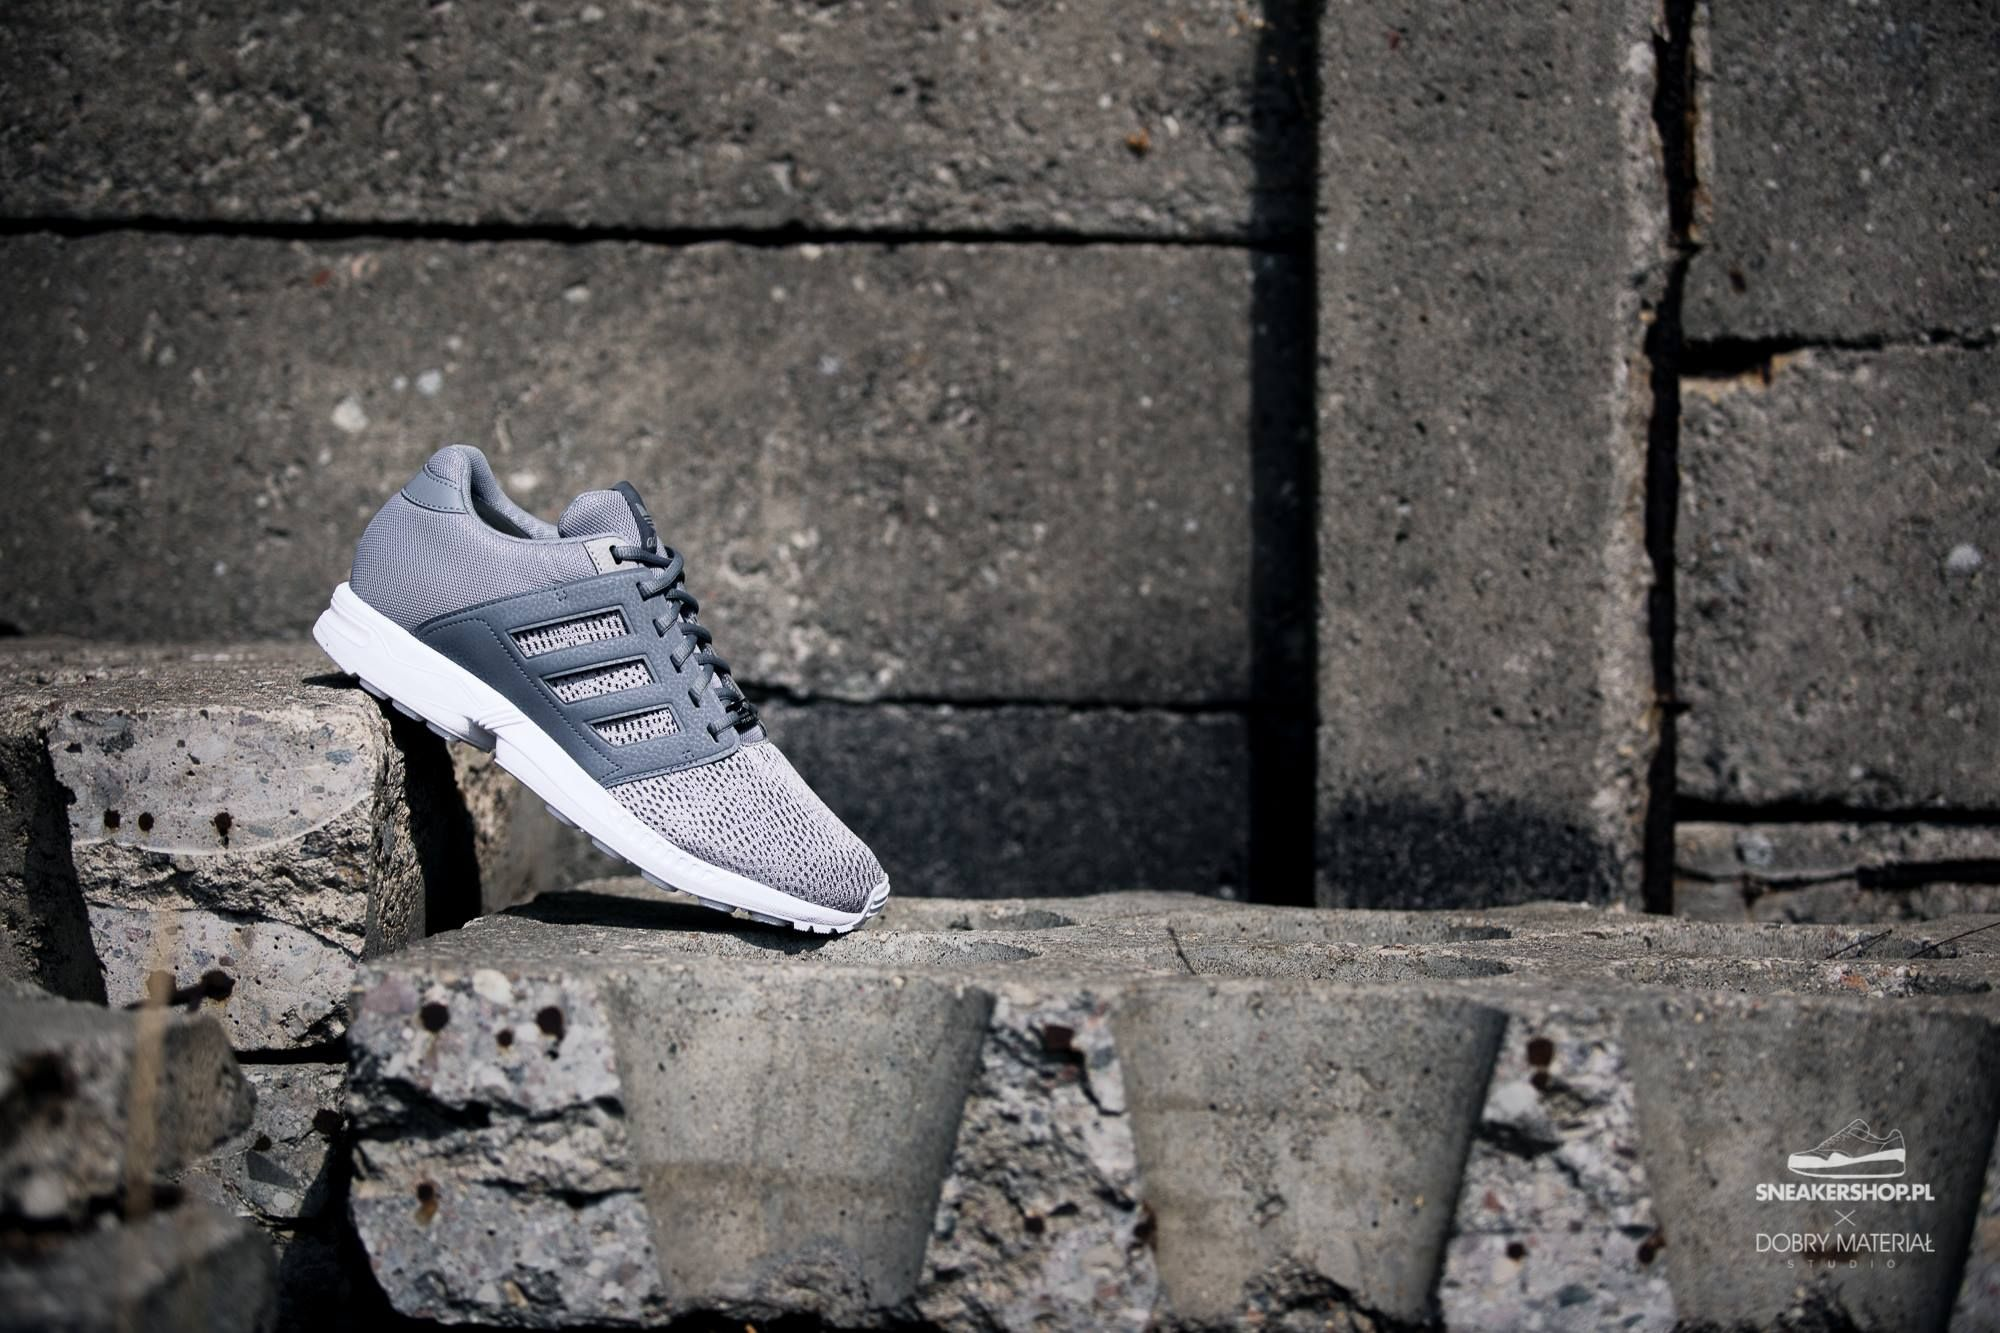 Adidas ZX Flux 2.0 Onix   Sneakers   Adidas, Adidas sneakers